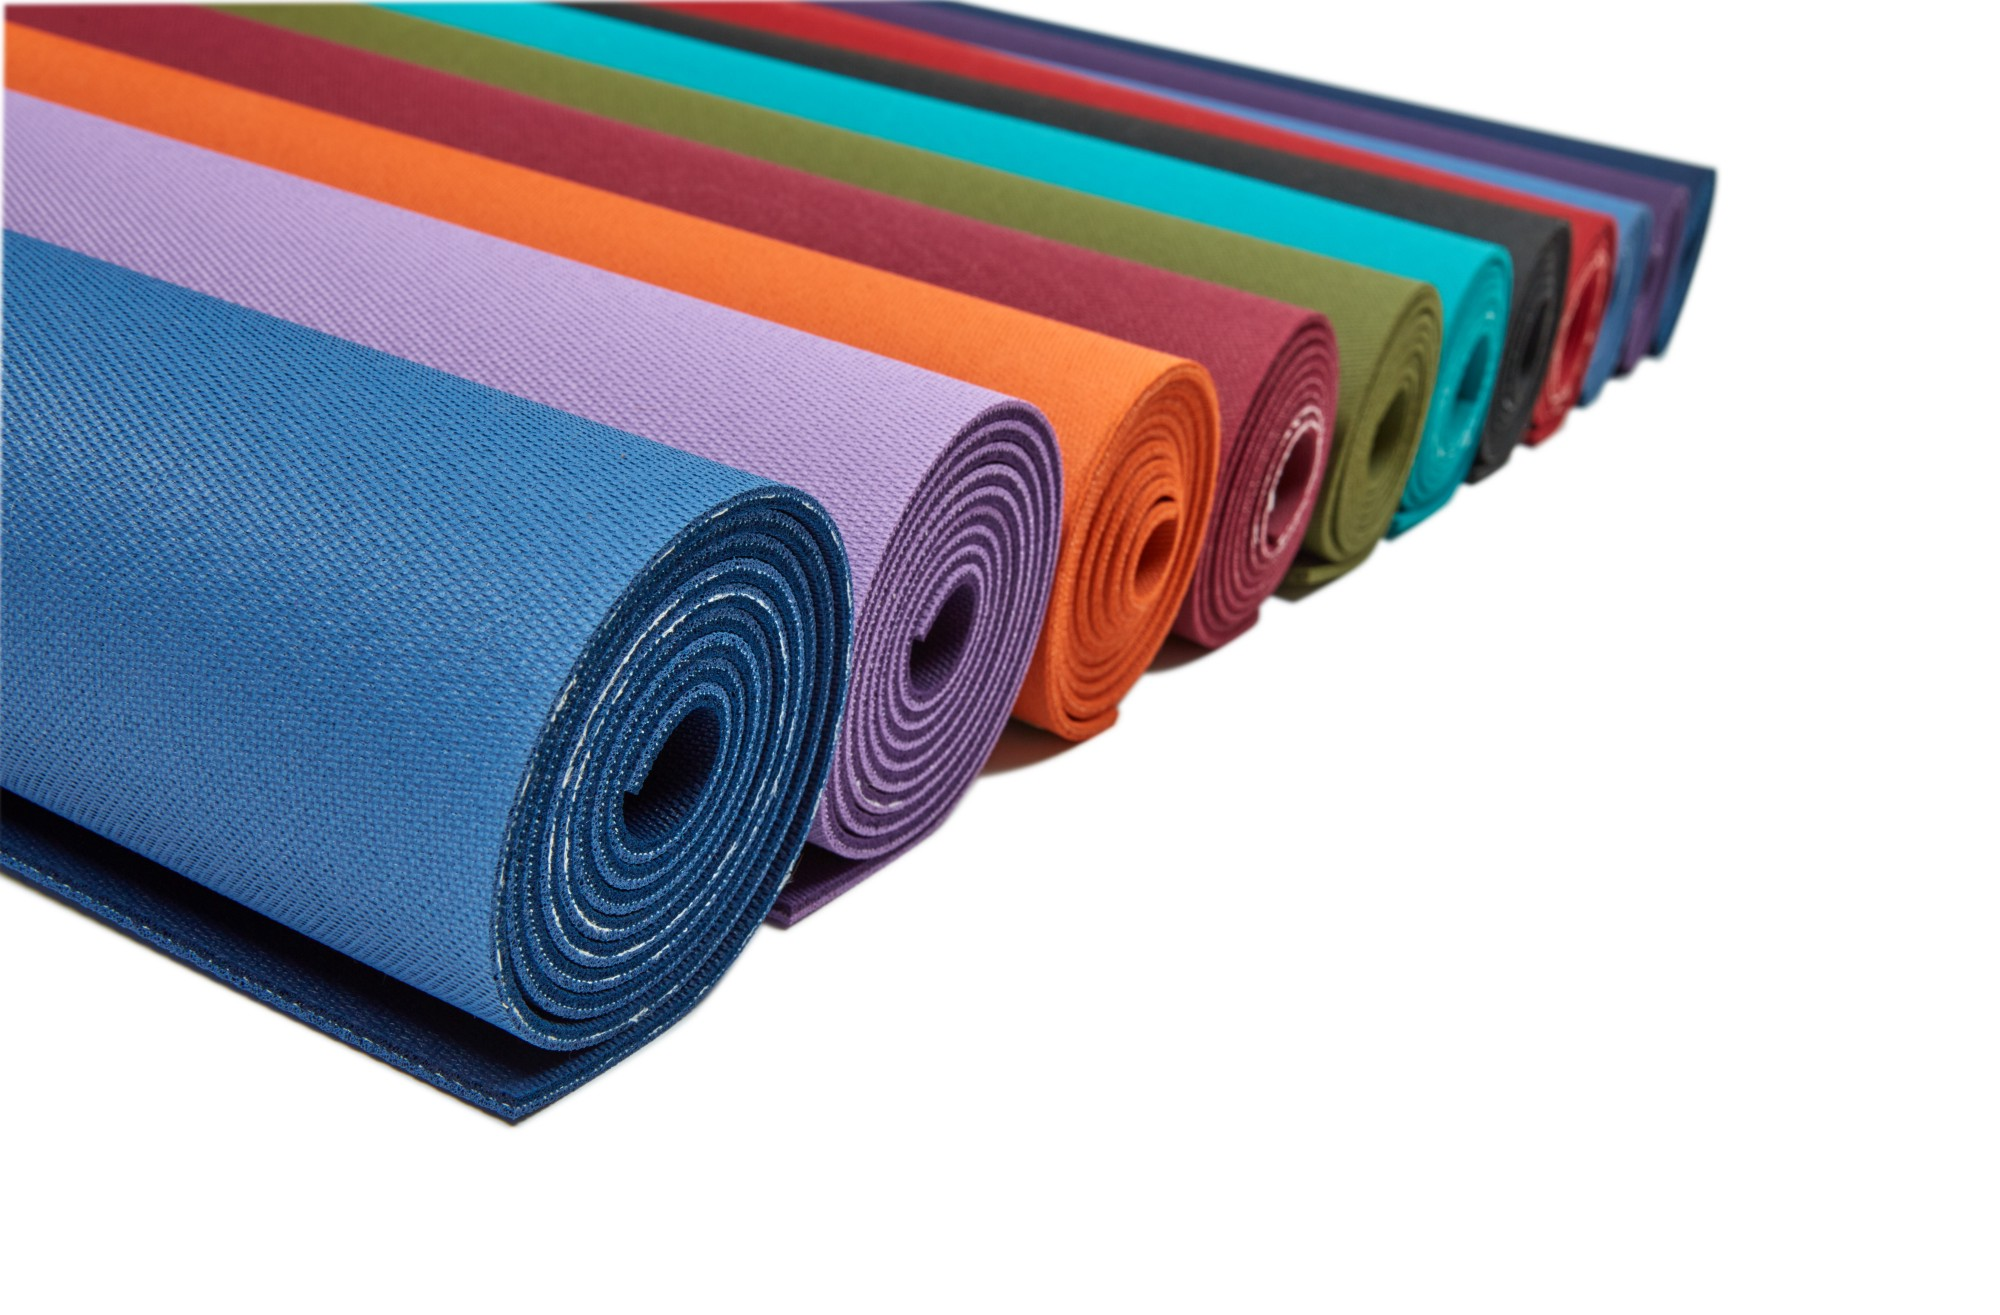 pro mat cheap mats best reviews yoga review top